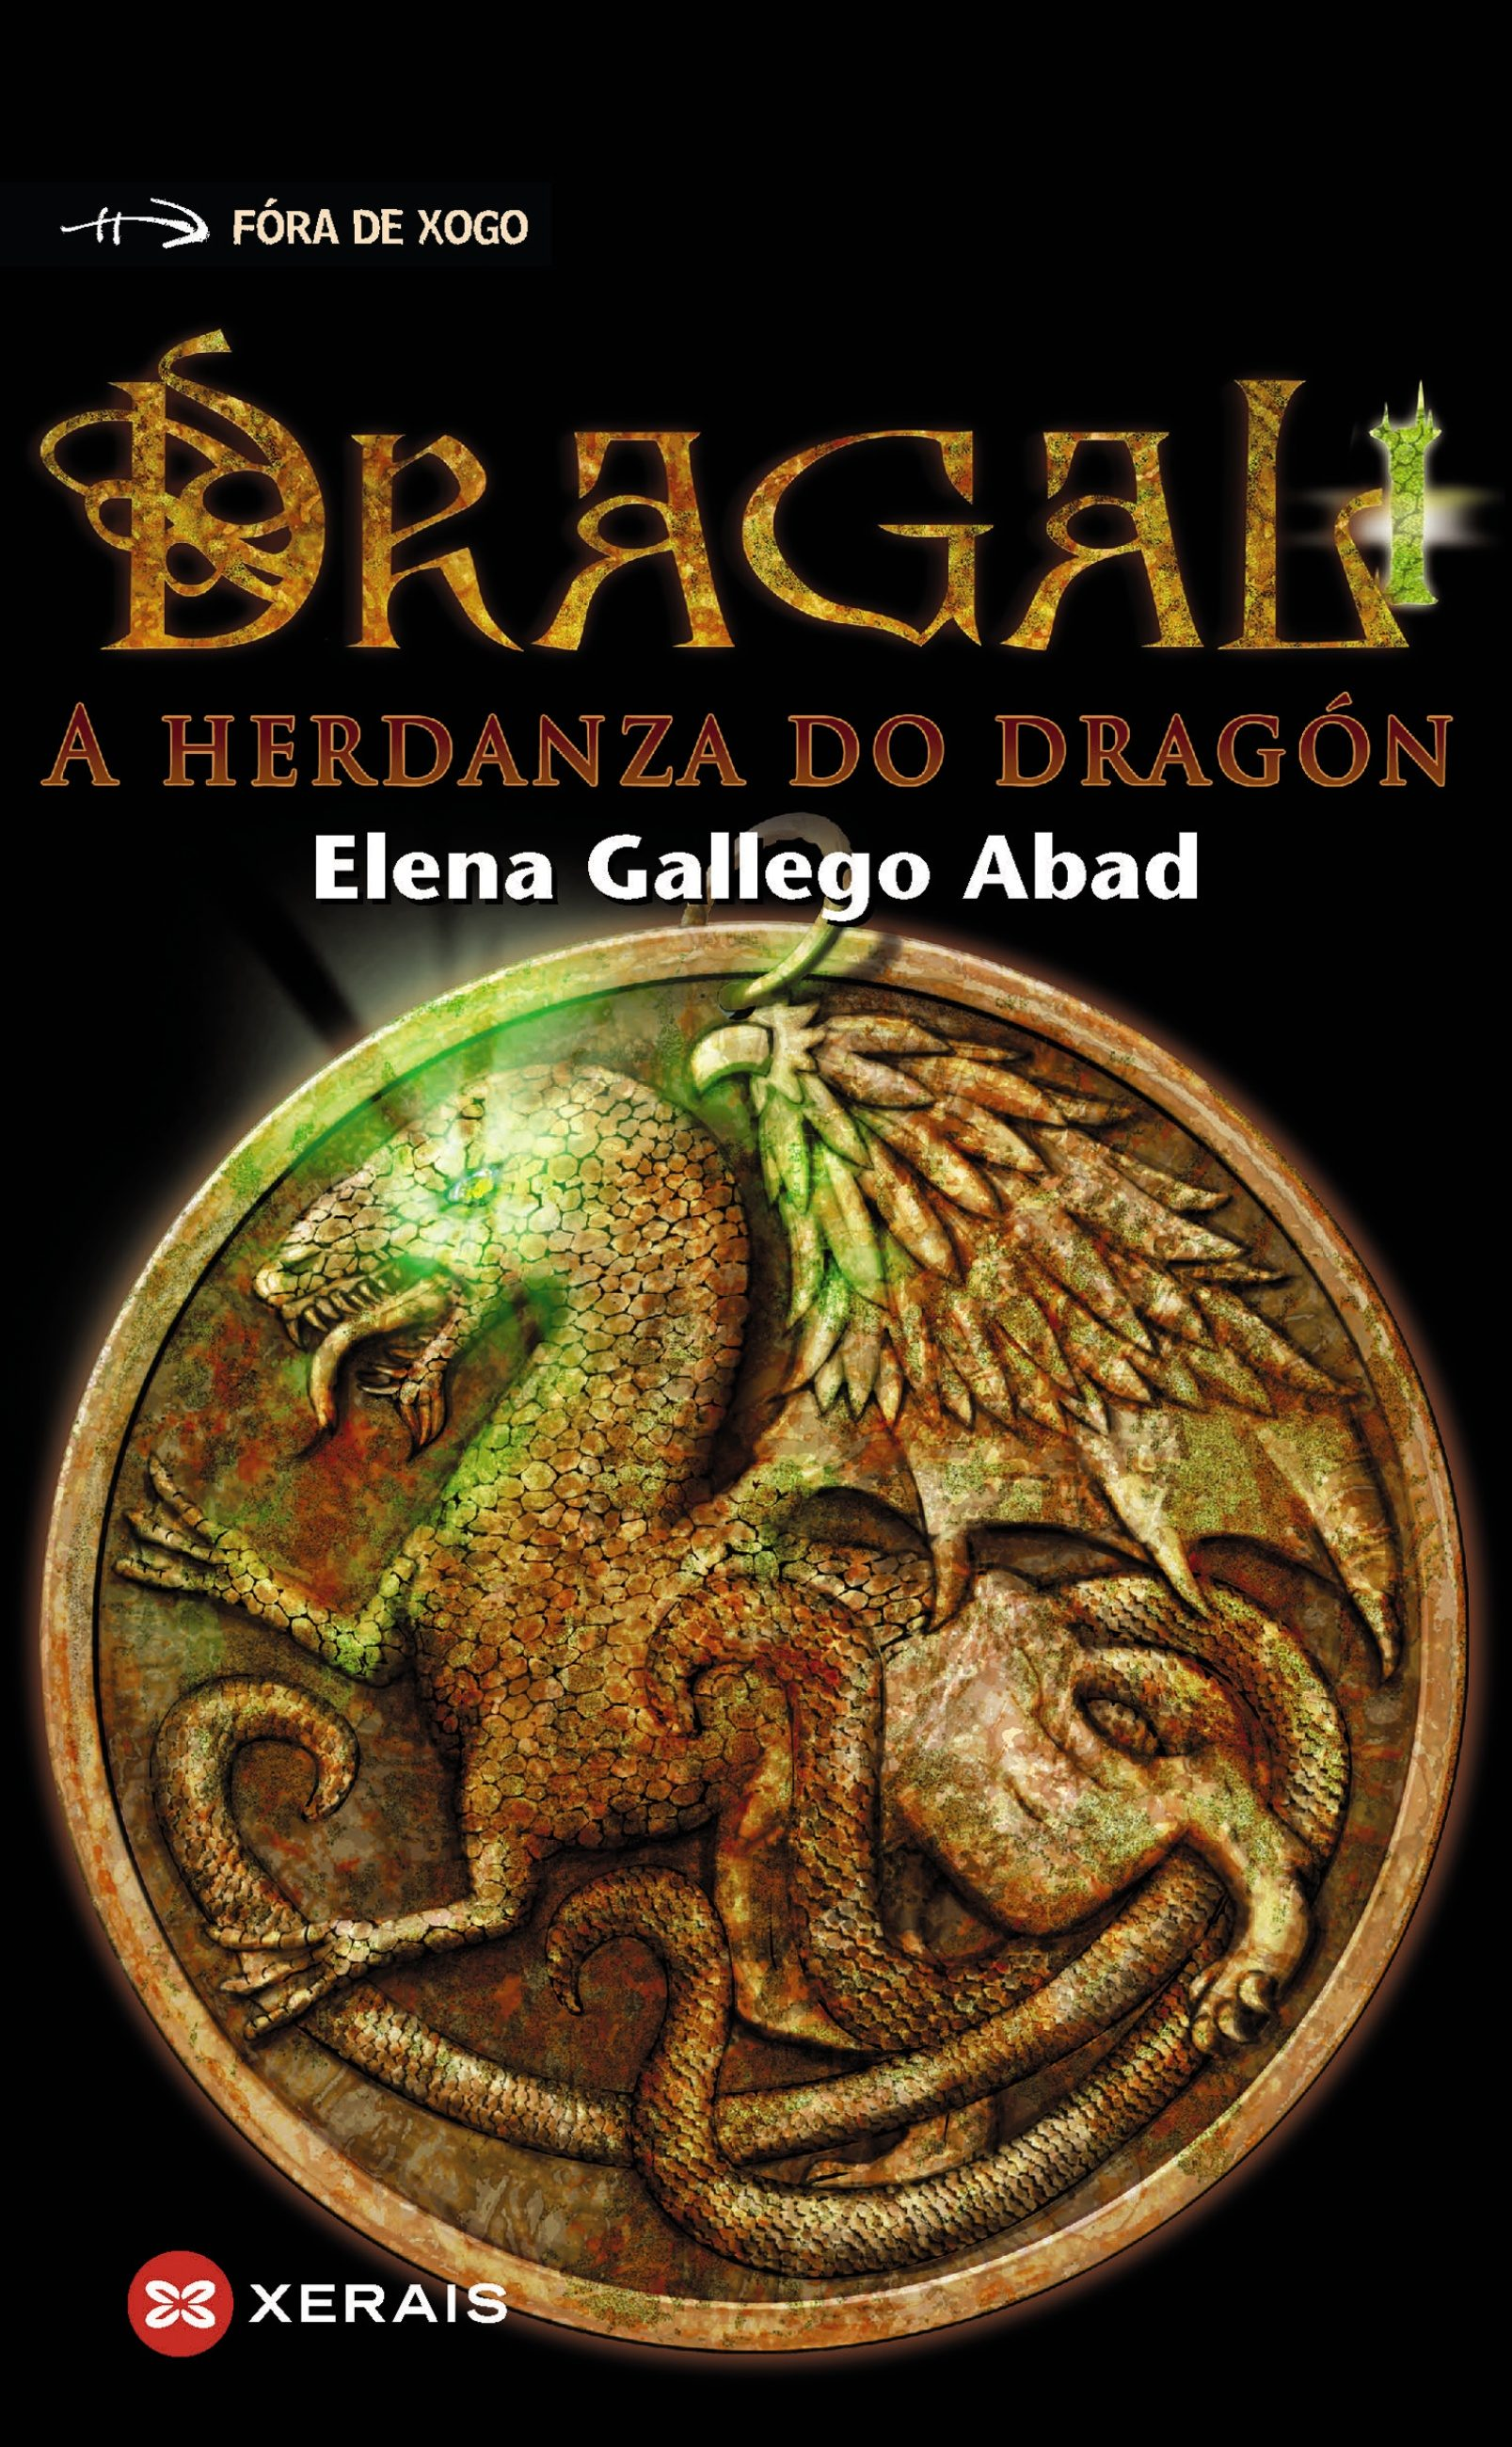 Dragal I (Galician Edition)